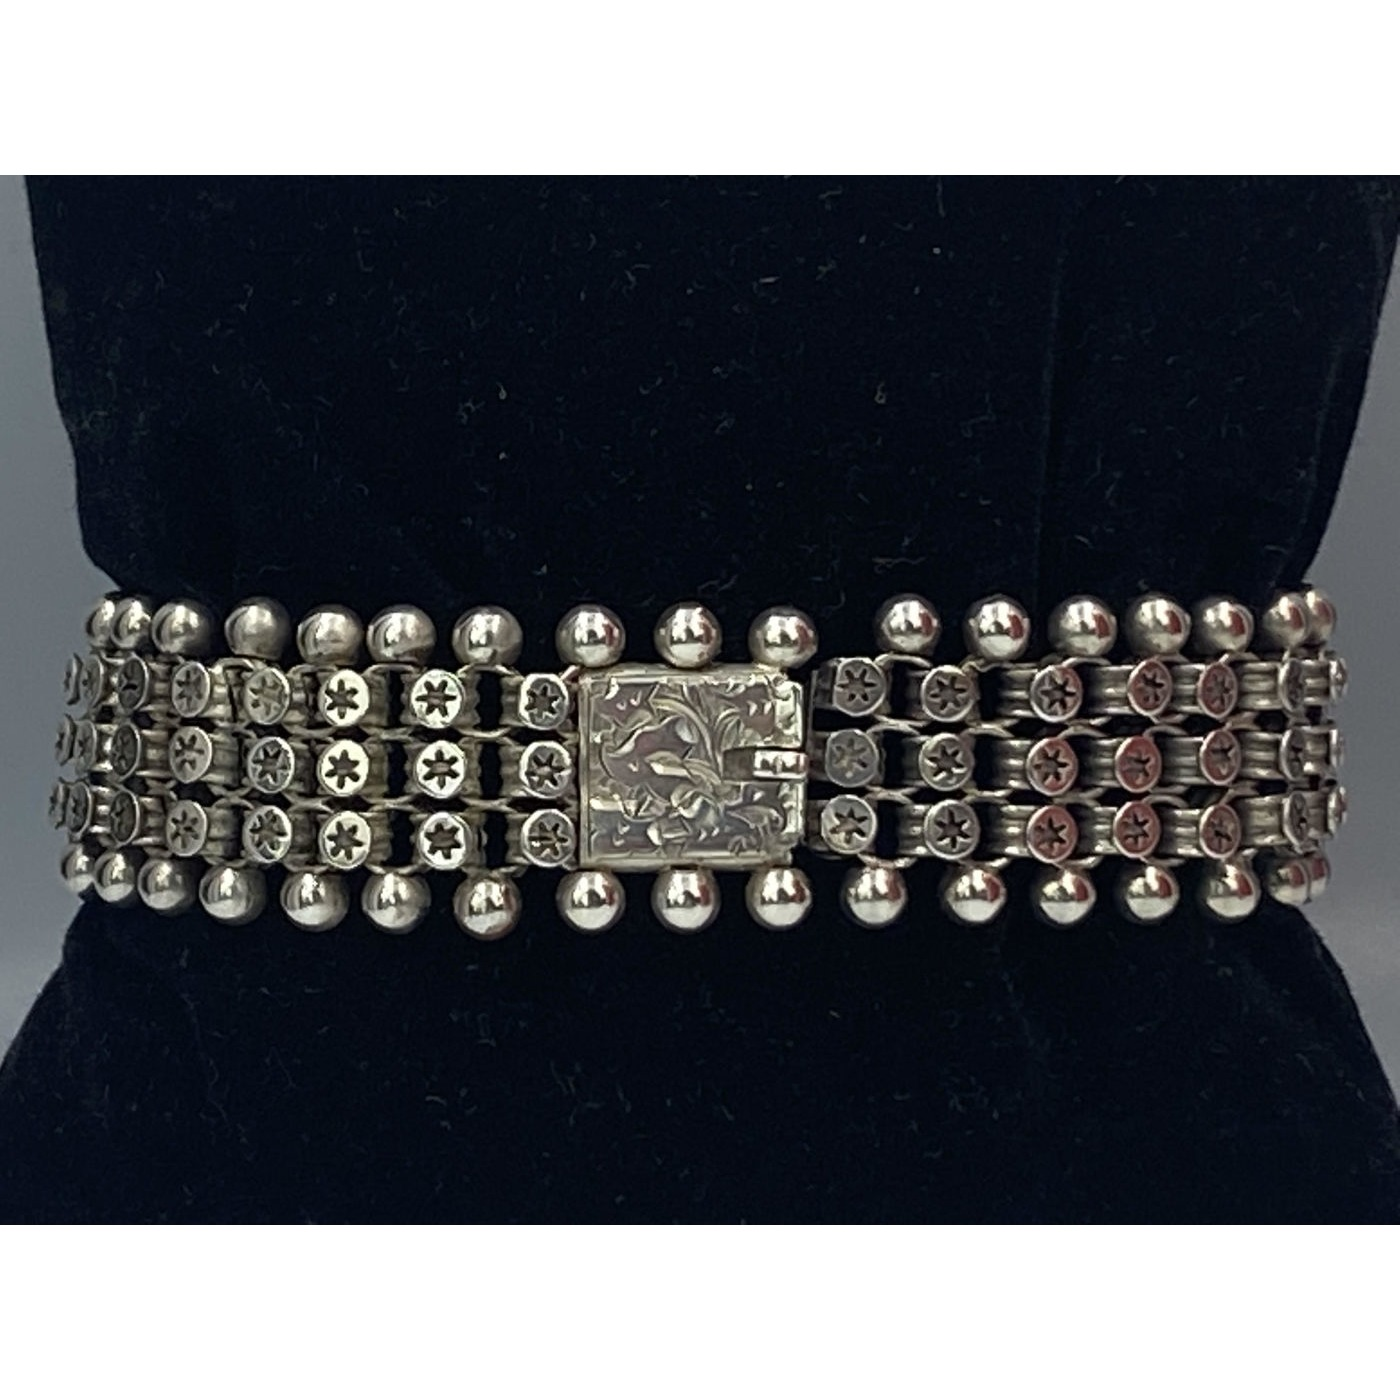 Spectacular, Multi-Row Star Link Antique English Bracelet with Exterior Balls